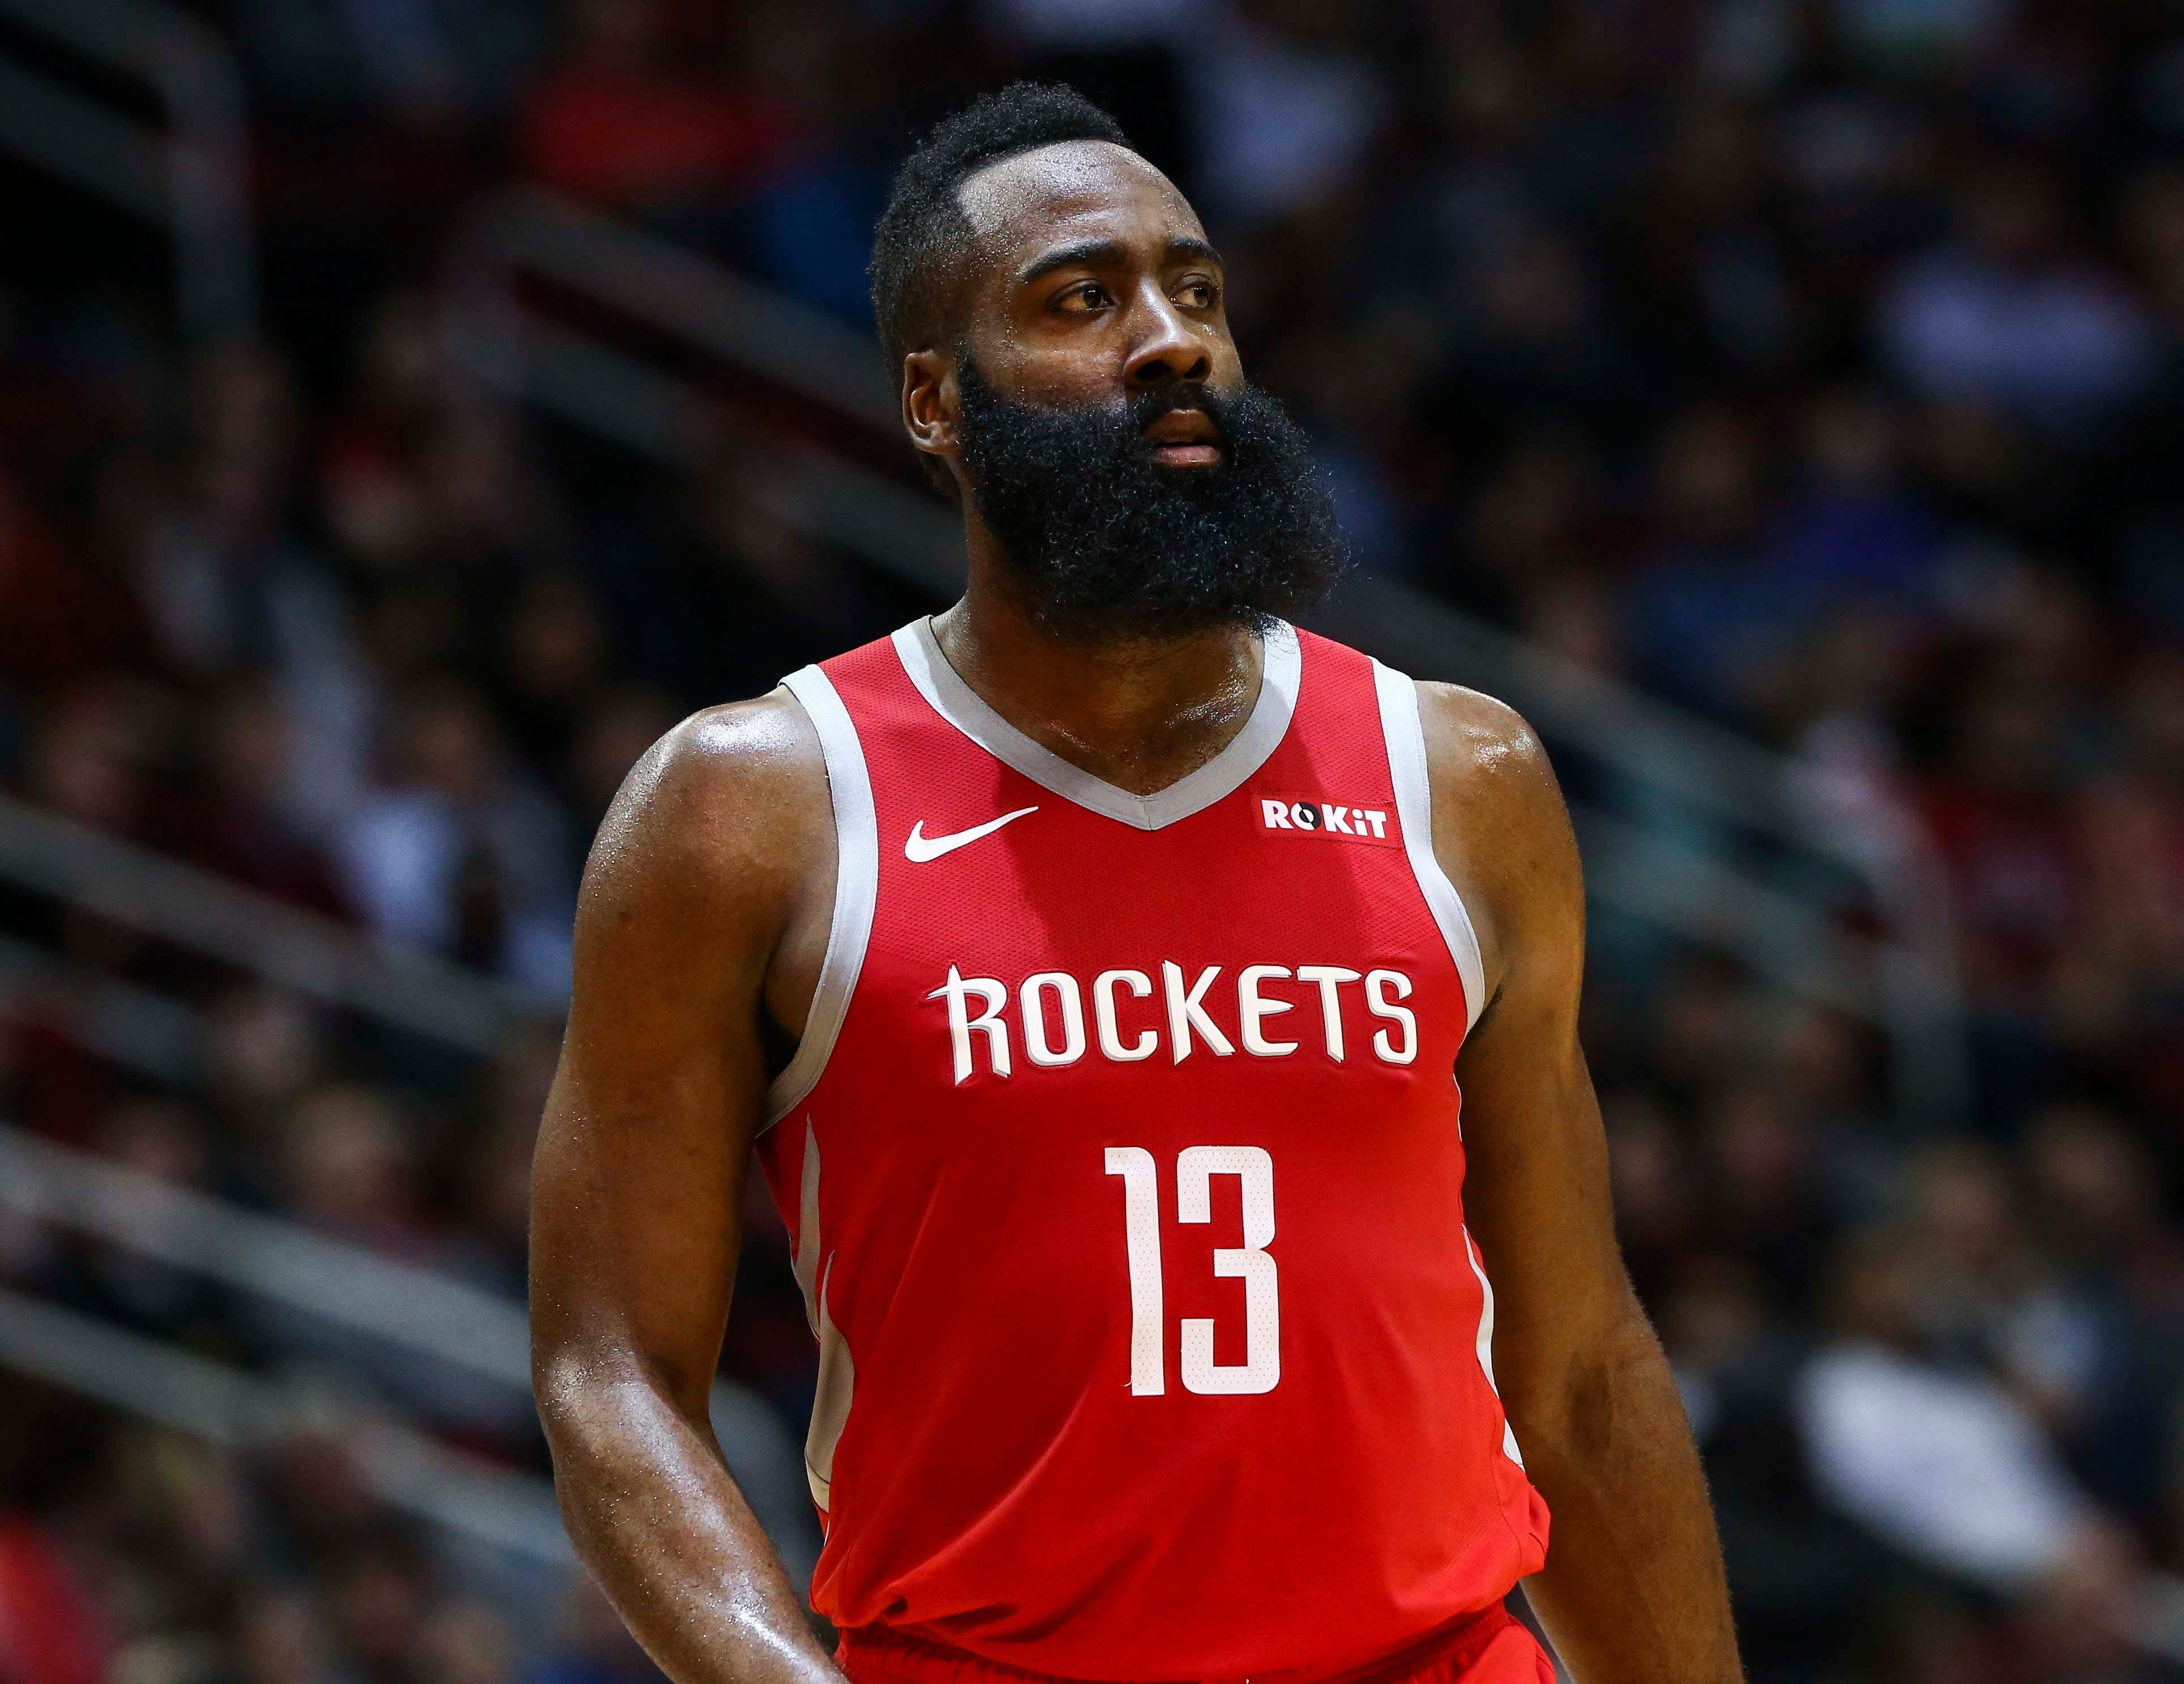 Rockets James Harden makes history with 17th 30-point game in a row